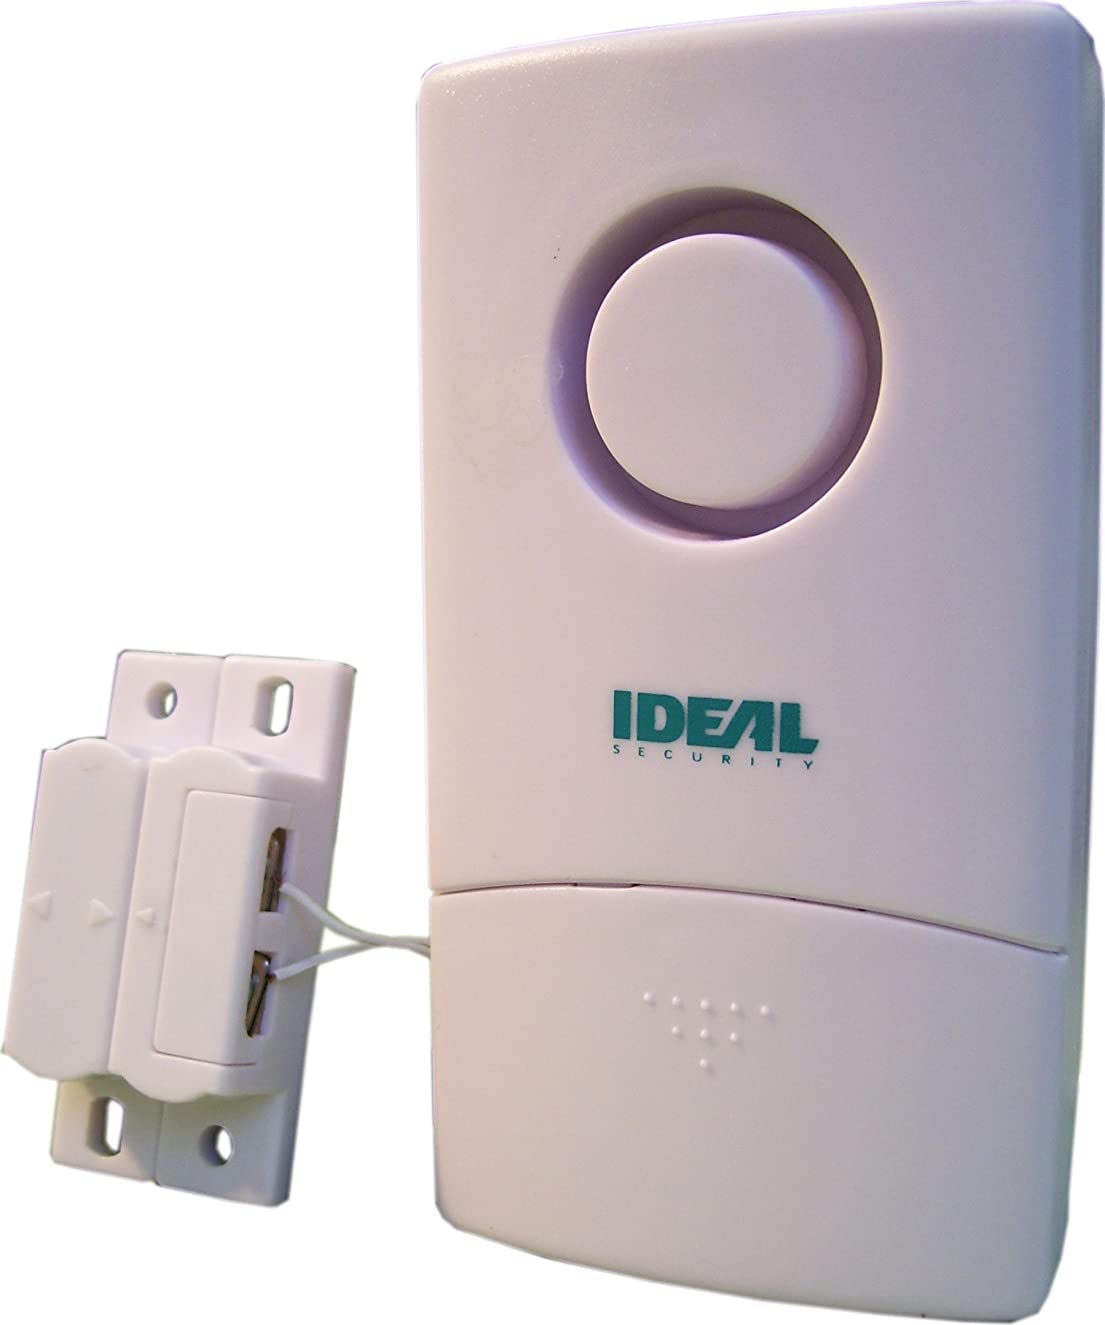 Ideal Security SK605 SOLO Door and Window Contact Alarm with Wired Lead Pleasant Chime and Loud Siren